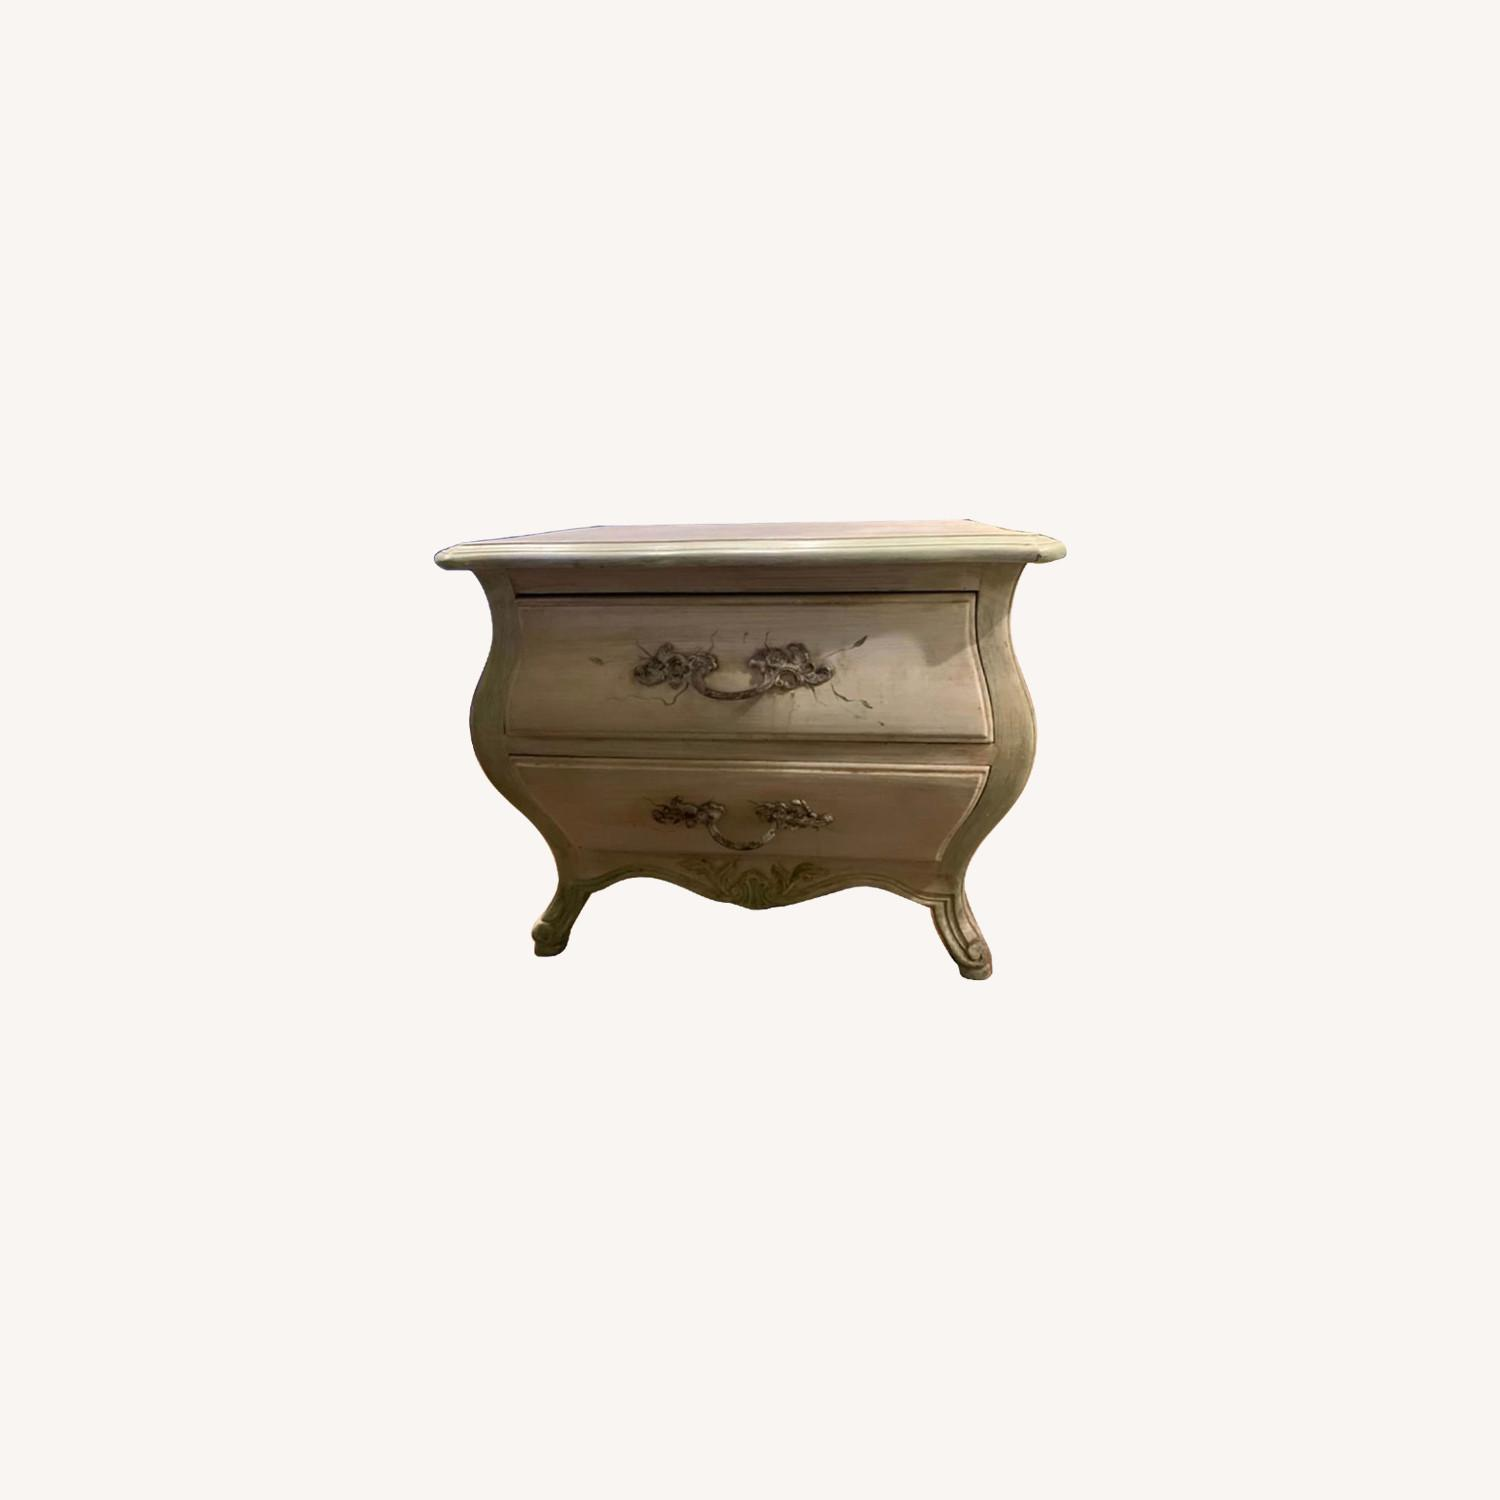 Hand Painted High Quality Nightstands - image-0